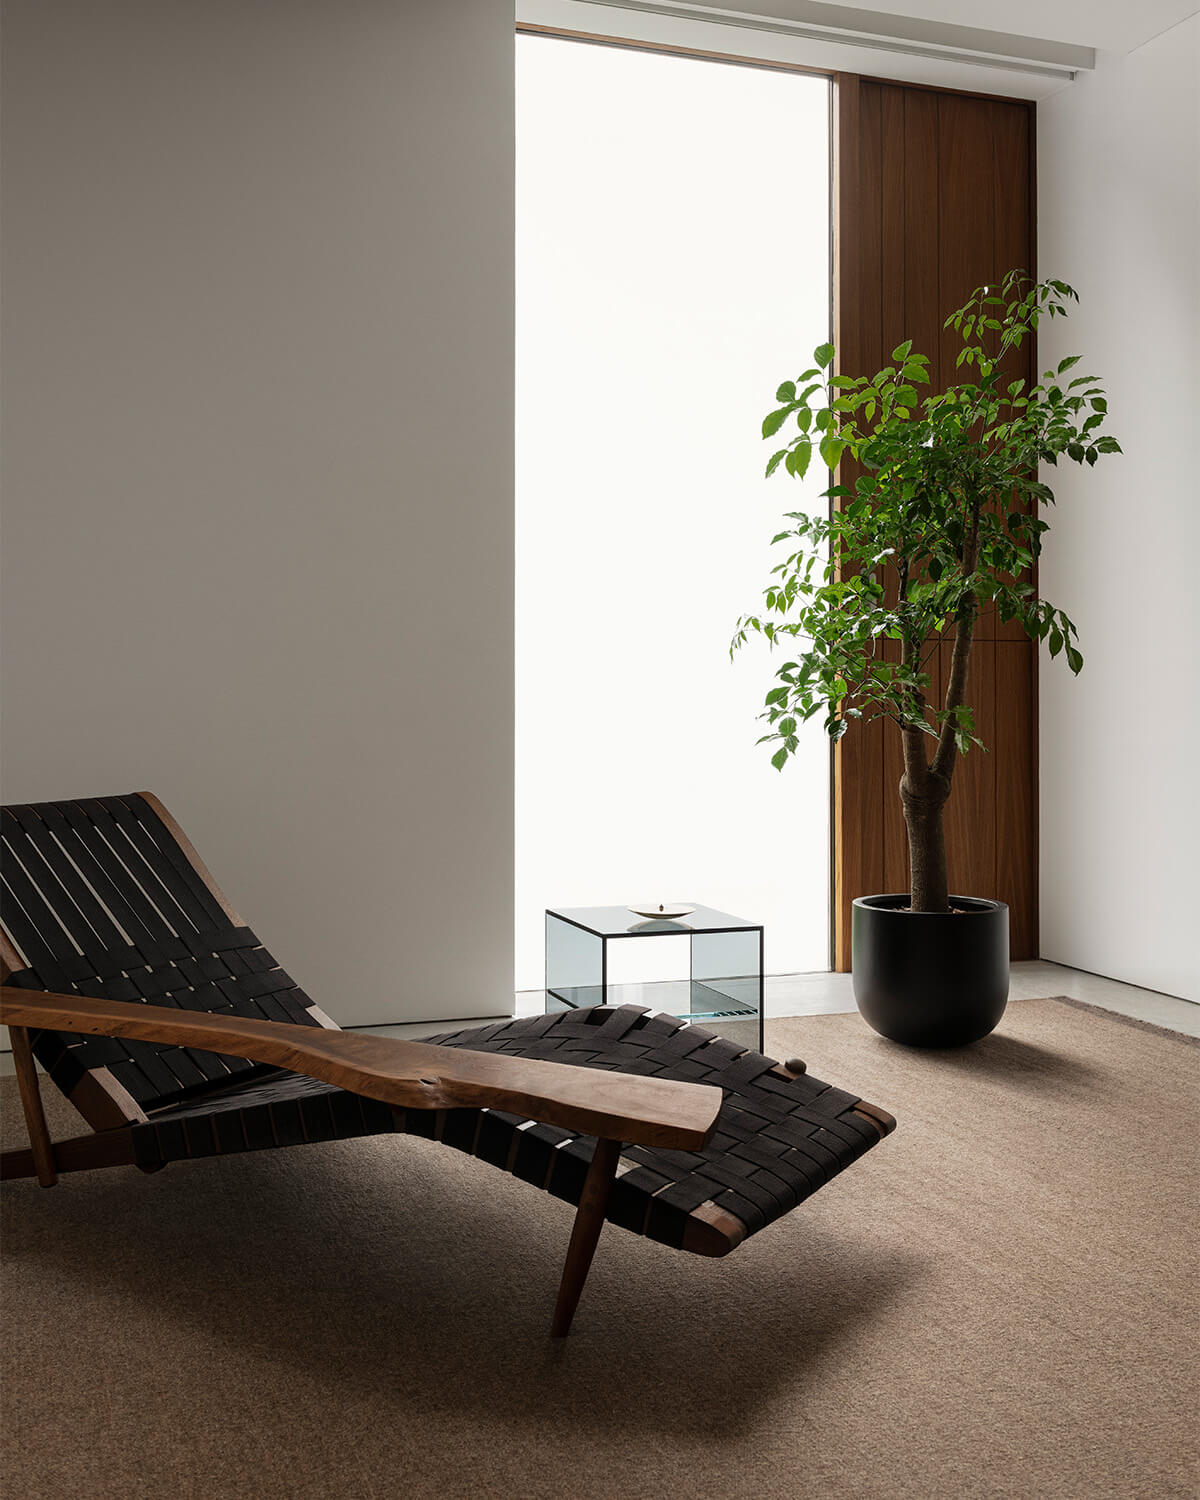 Zero in color Brown displayed in a sunny room together with a potted tree and a beautiful chaise.